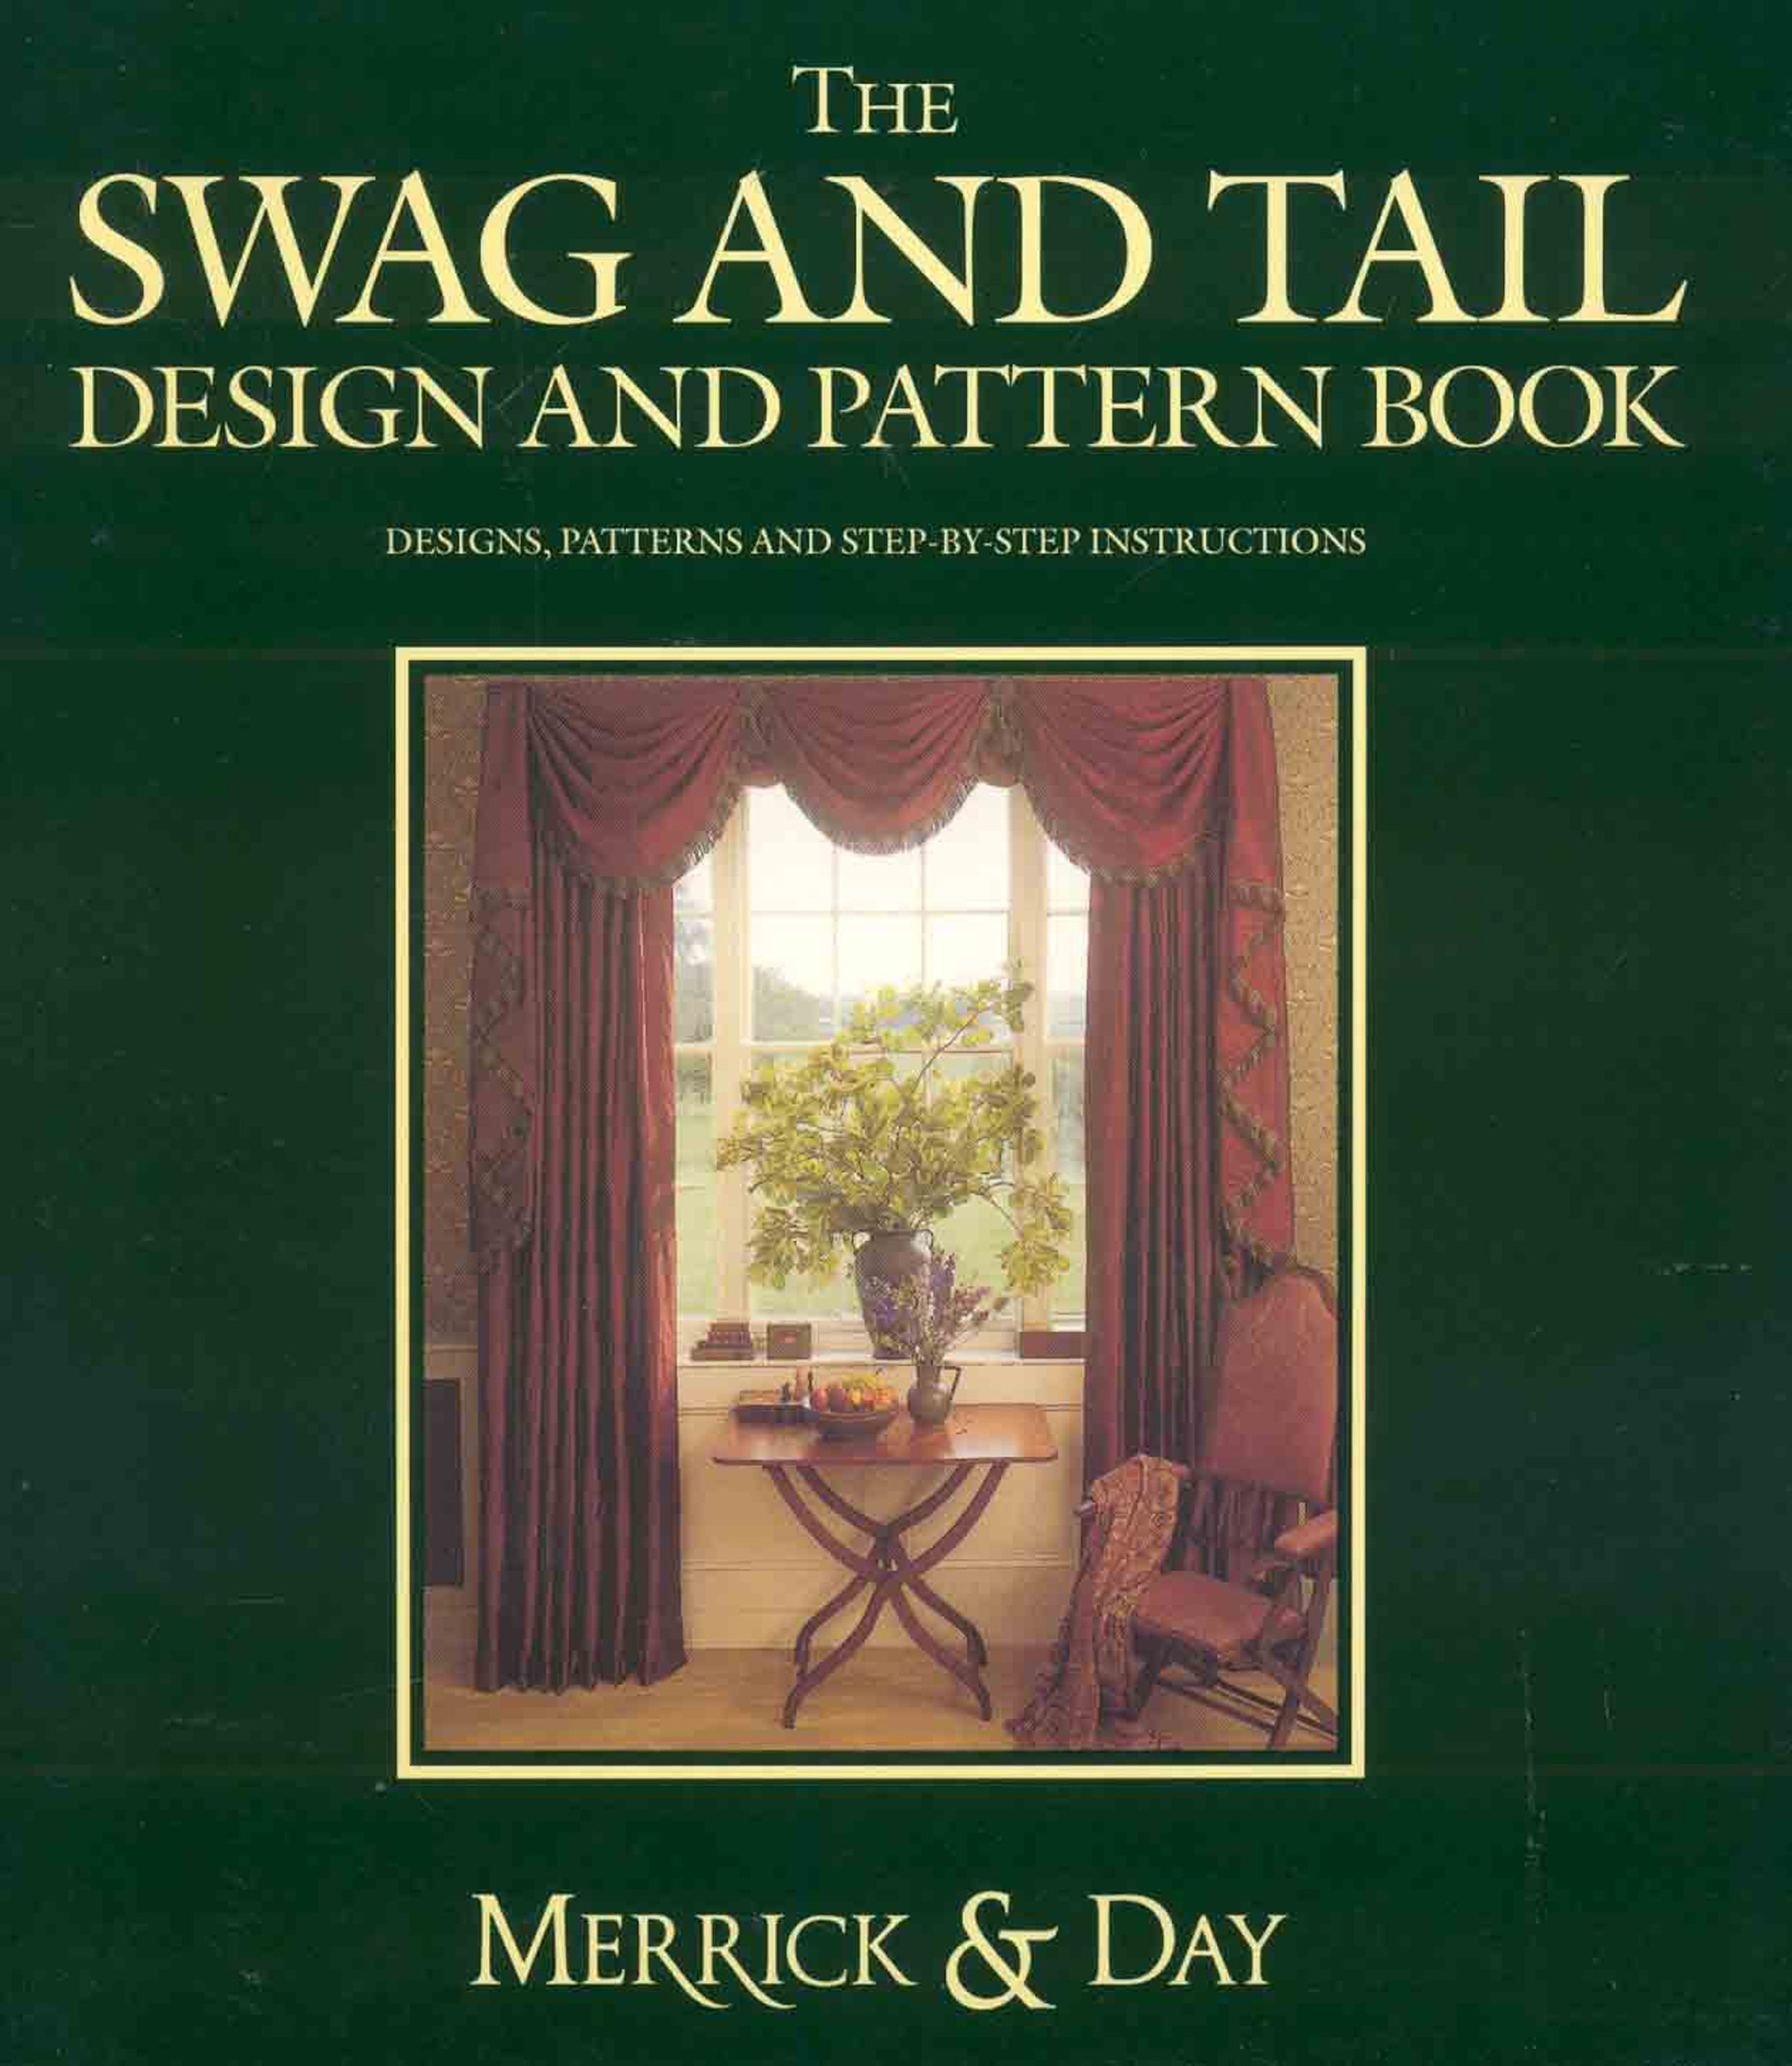 The Swag and Tail Design and Pattern Book (2 Volume Set) by Brand: Merrick And Day (Image #1)